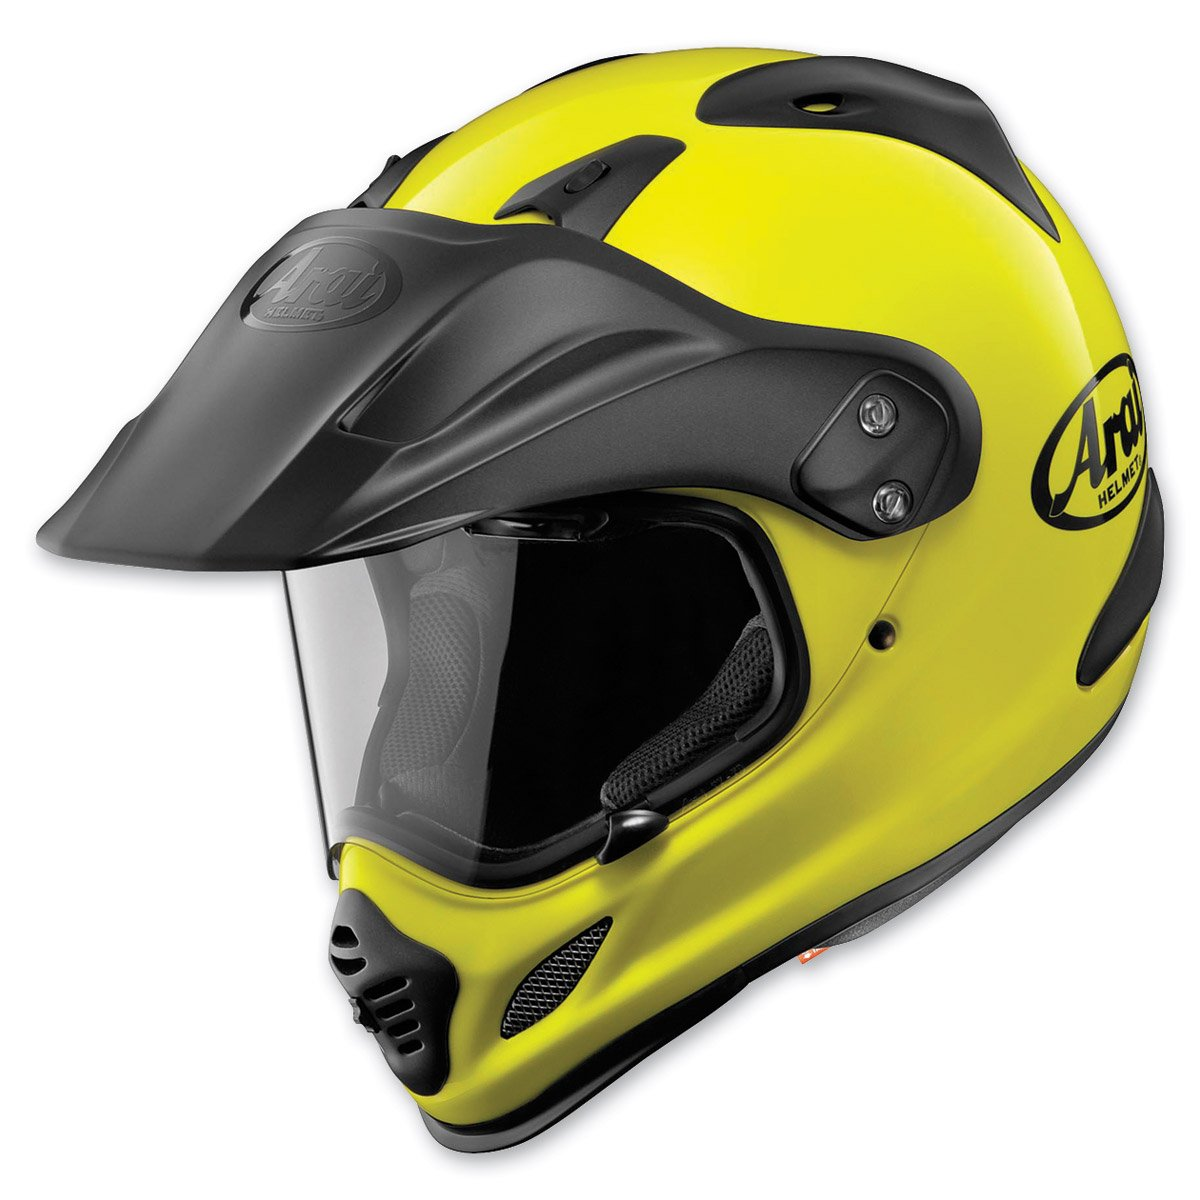 Arai XD4 Helmet (Fluorescent Yellow, Large)